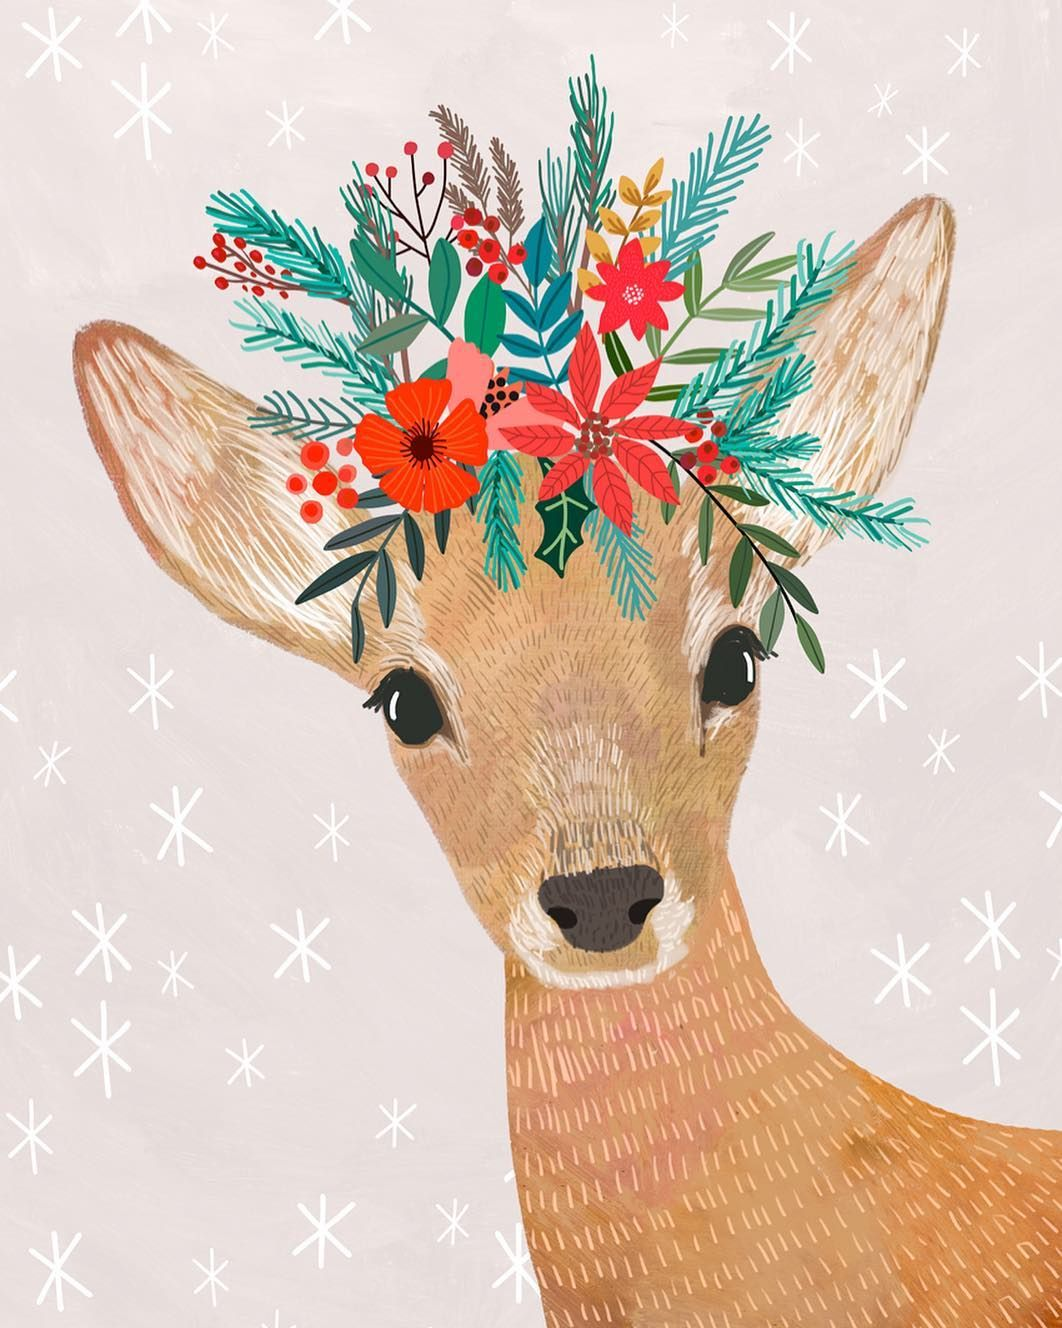 "Mia Charro � on Instagram: ""Merry Christmas to everyone! ��� Feliz Navidad a todos! . . . #christmasgreetings #miacharro #christmasdeer #floralcrown #merrychristmas…"""